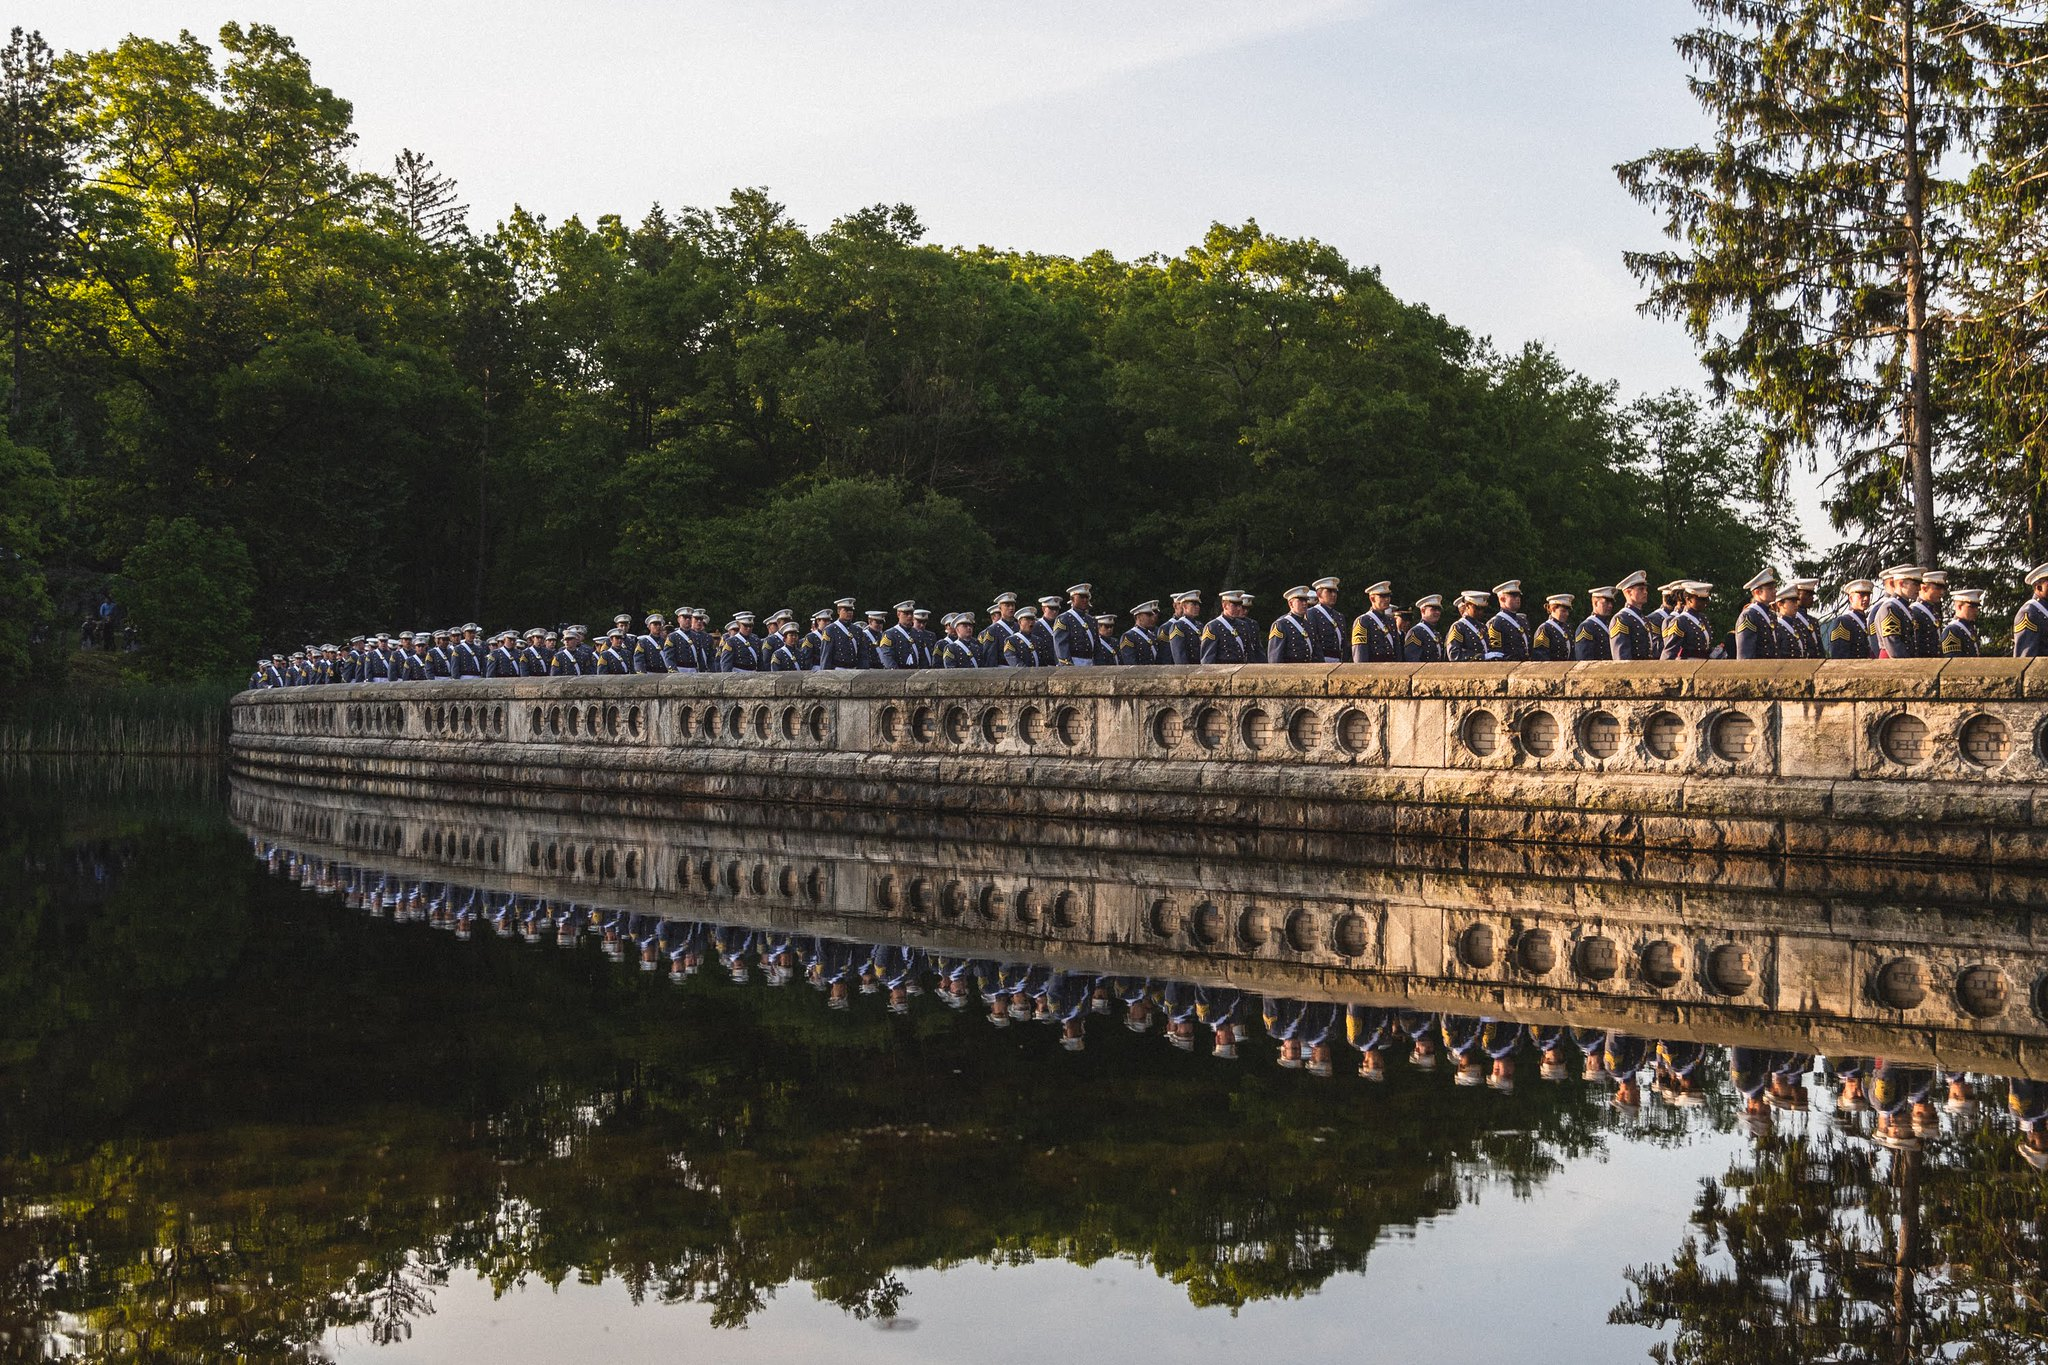 First class cadets walk across Luck Reservoir on their way to graduation May 25, 2019. (Cadet Alex Gudenkauf/Army)